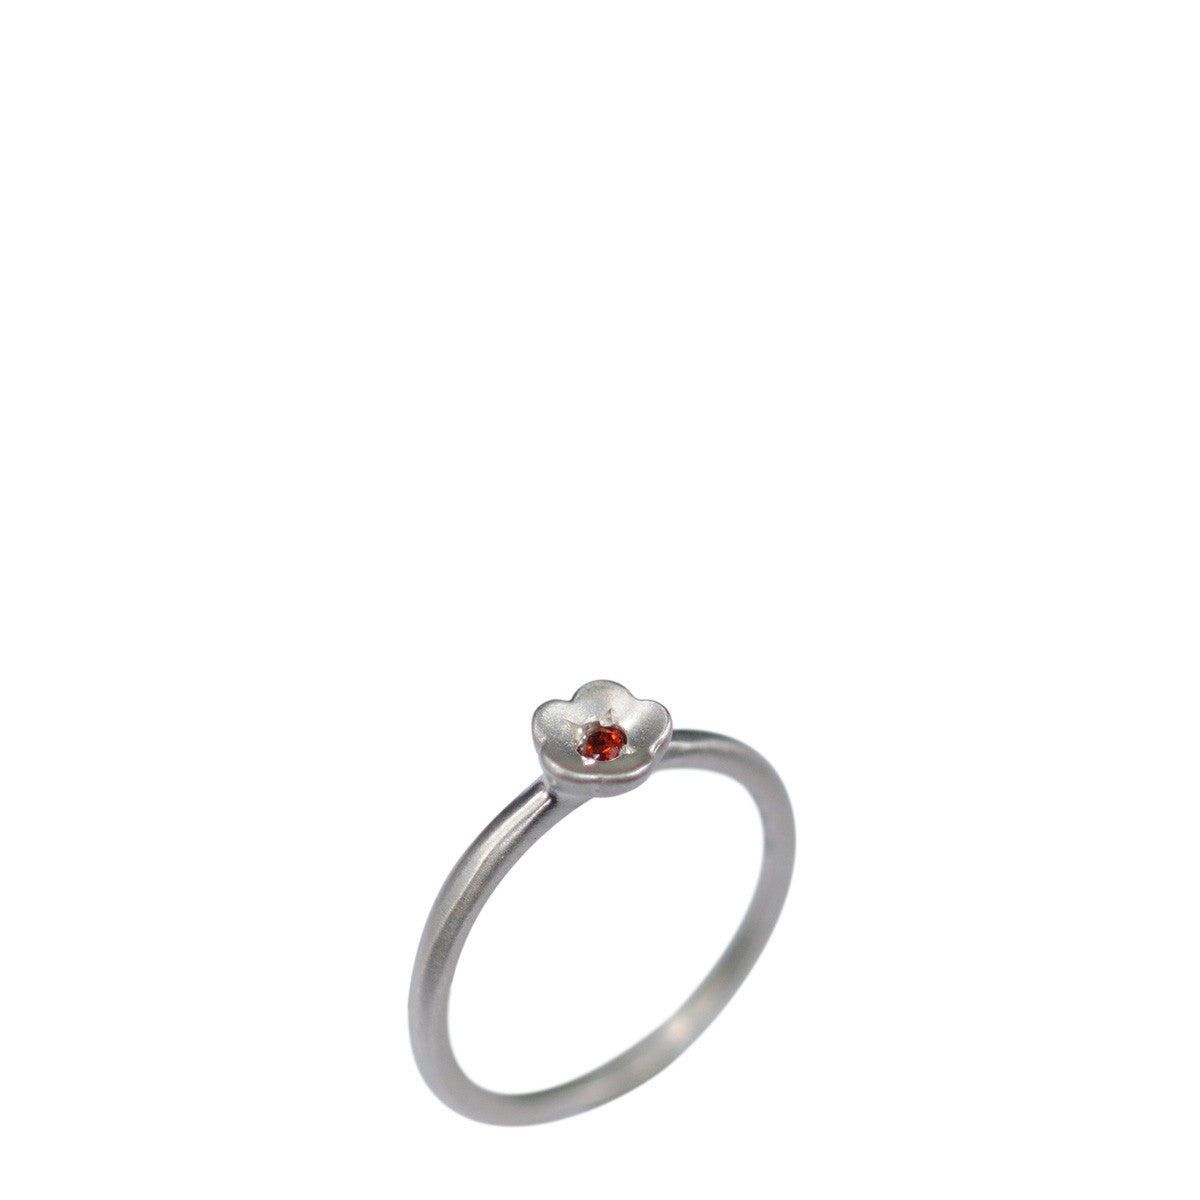 Sterling Silver Buttercup Ring with Garnet